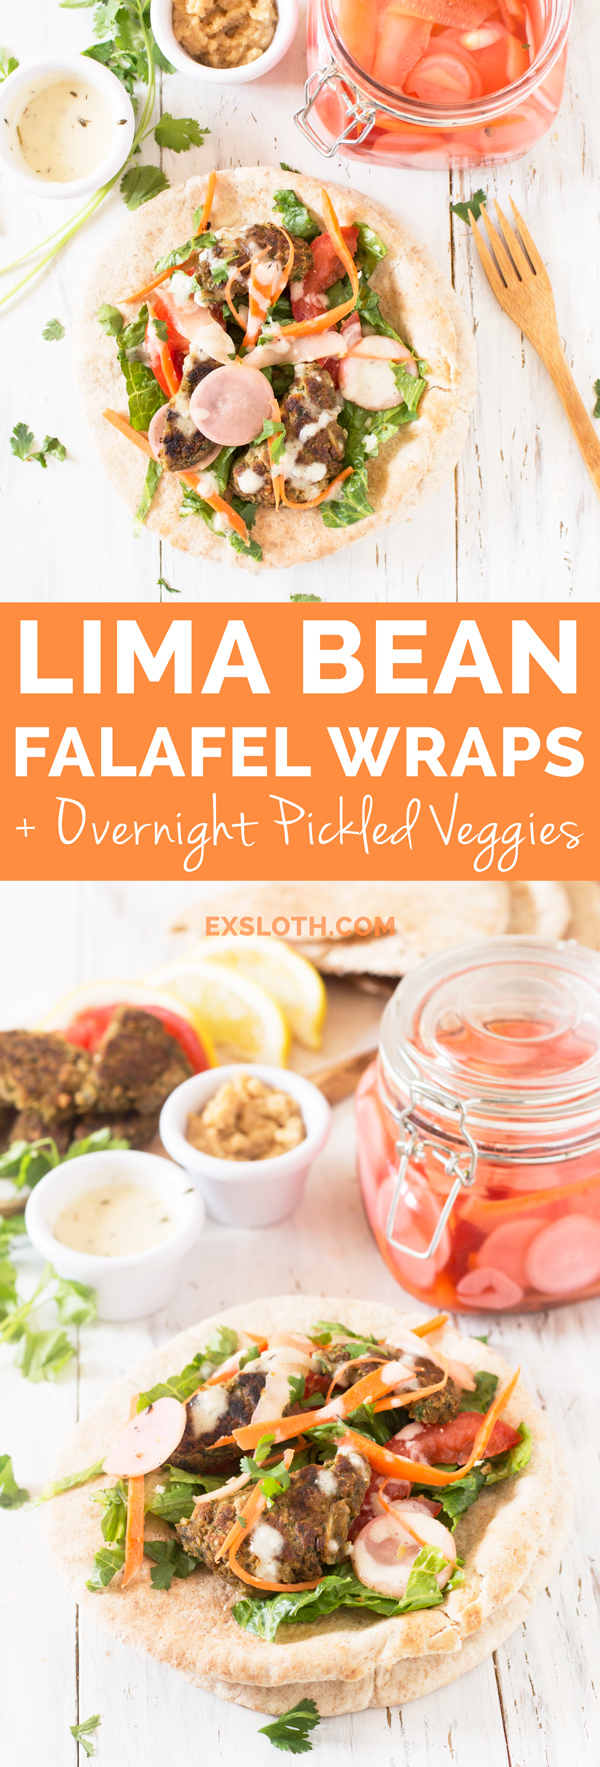 Lima Bean Falafel Wraps with Overnight Pickled Veggies (Vegan) via @ExSloth | ExSloth.com